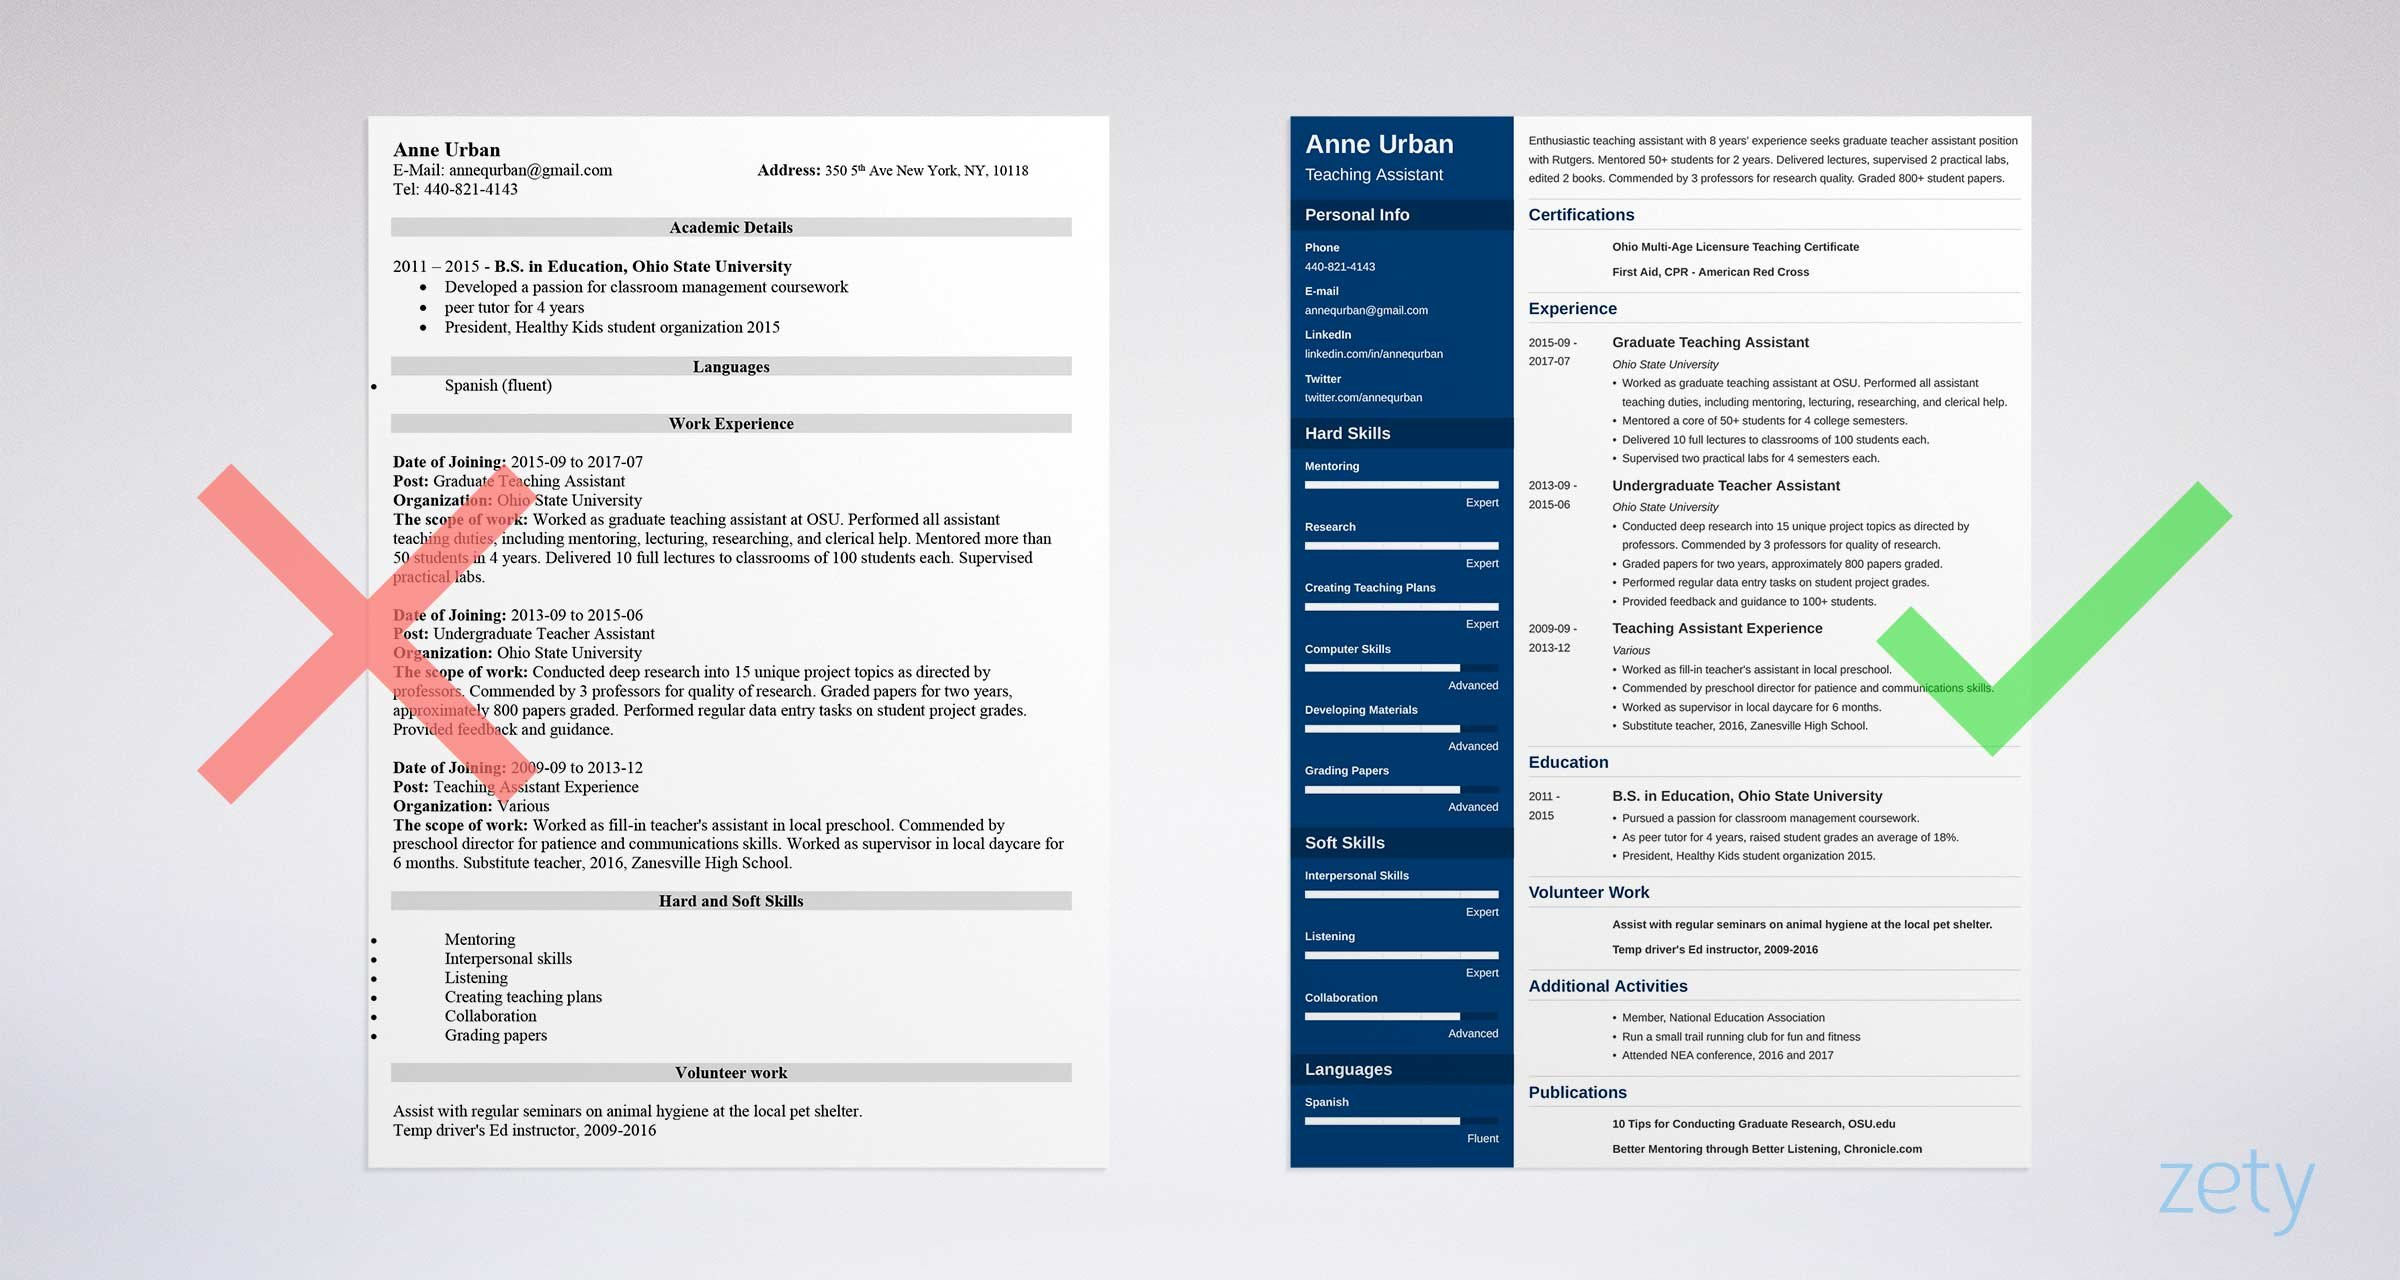 Best Font for a Resume What Size  Typeface to Use? 15+ Pro Tips